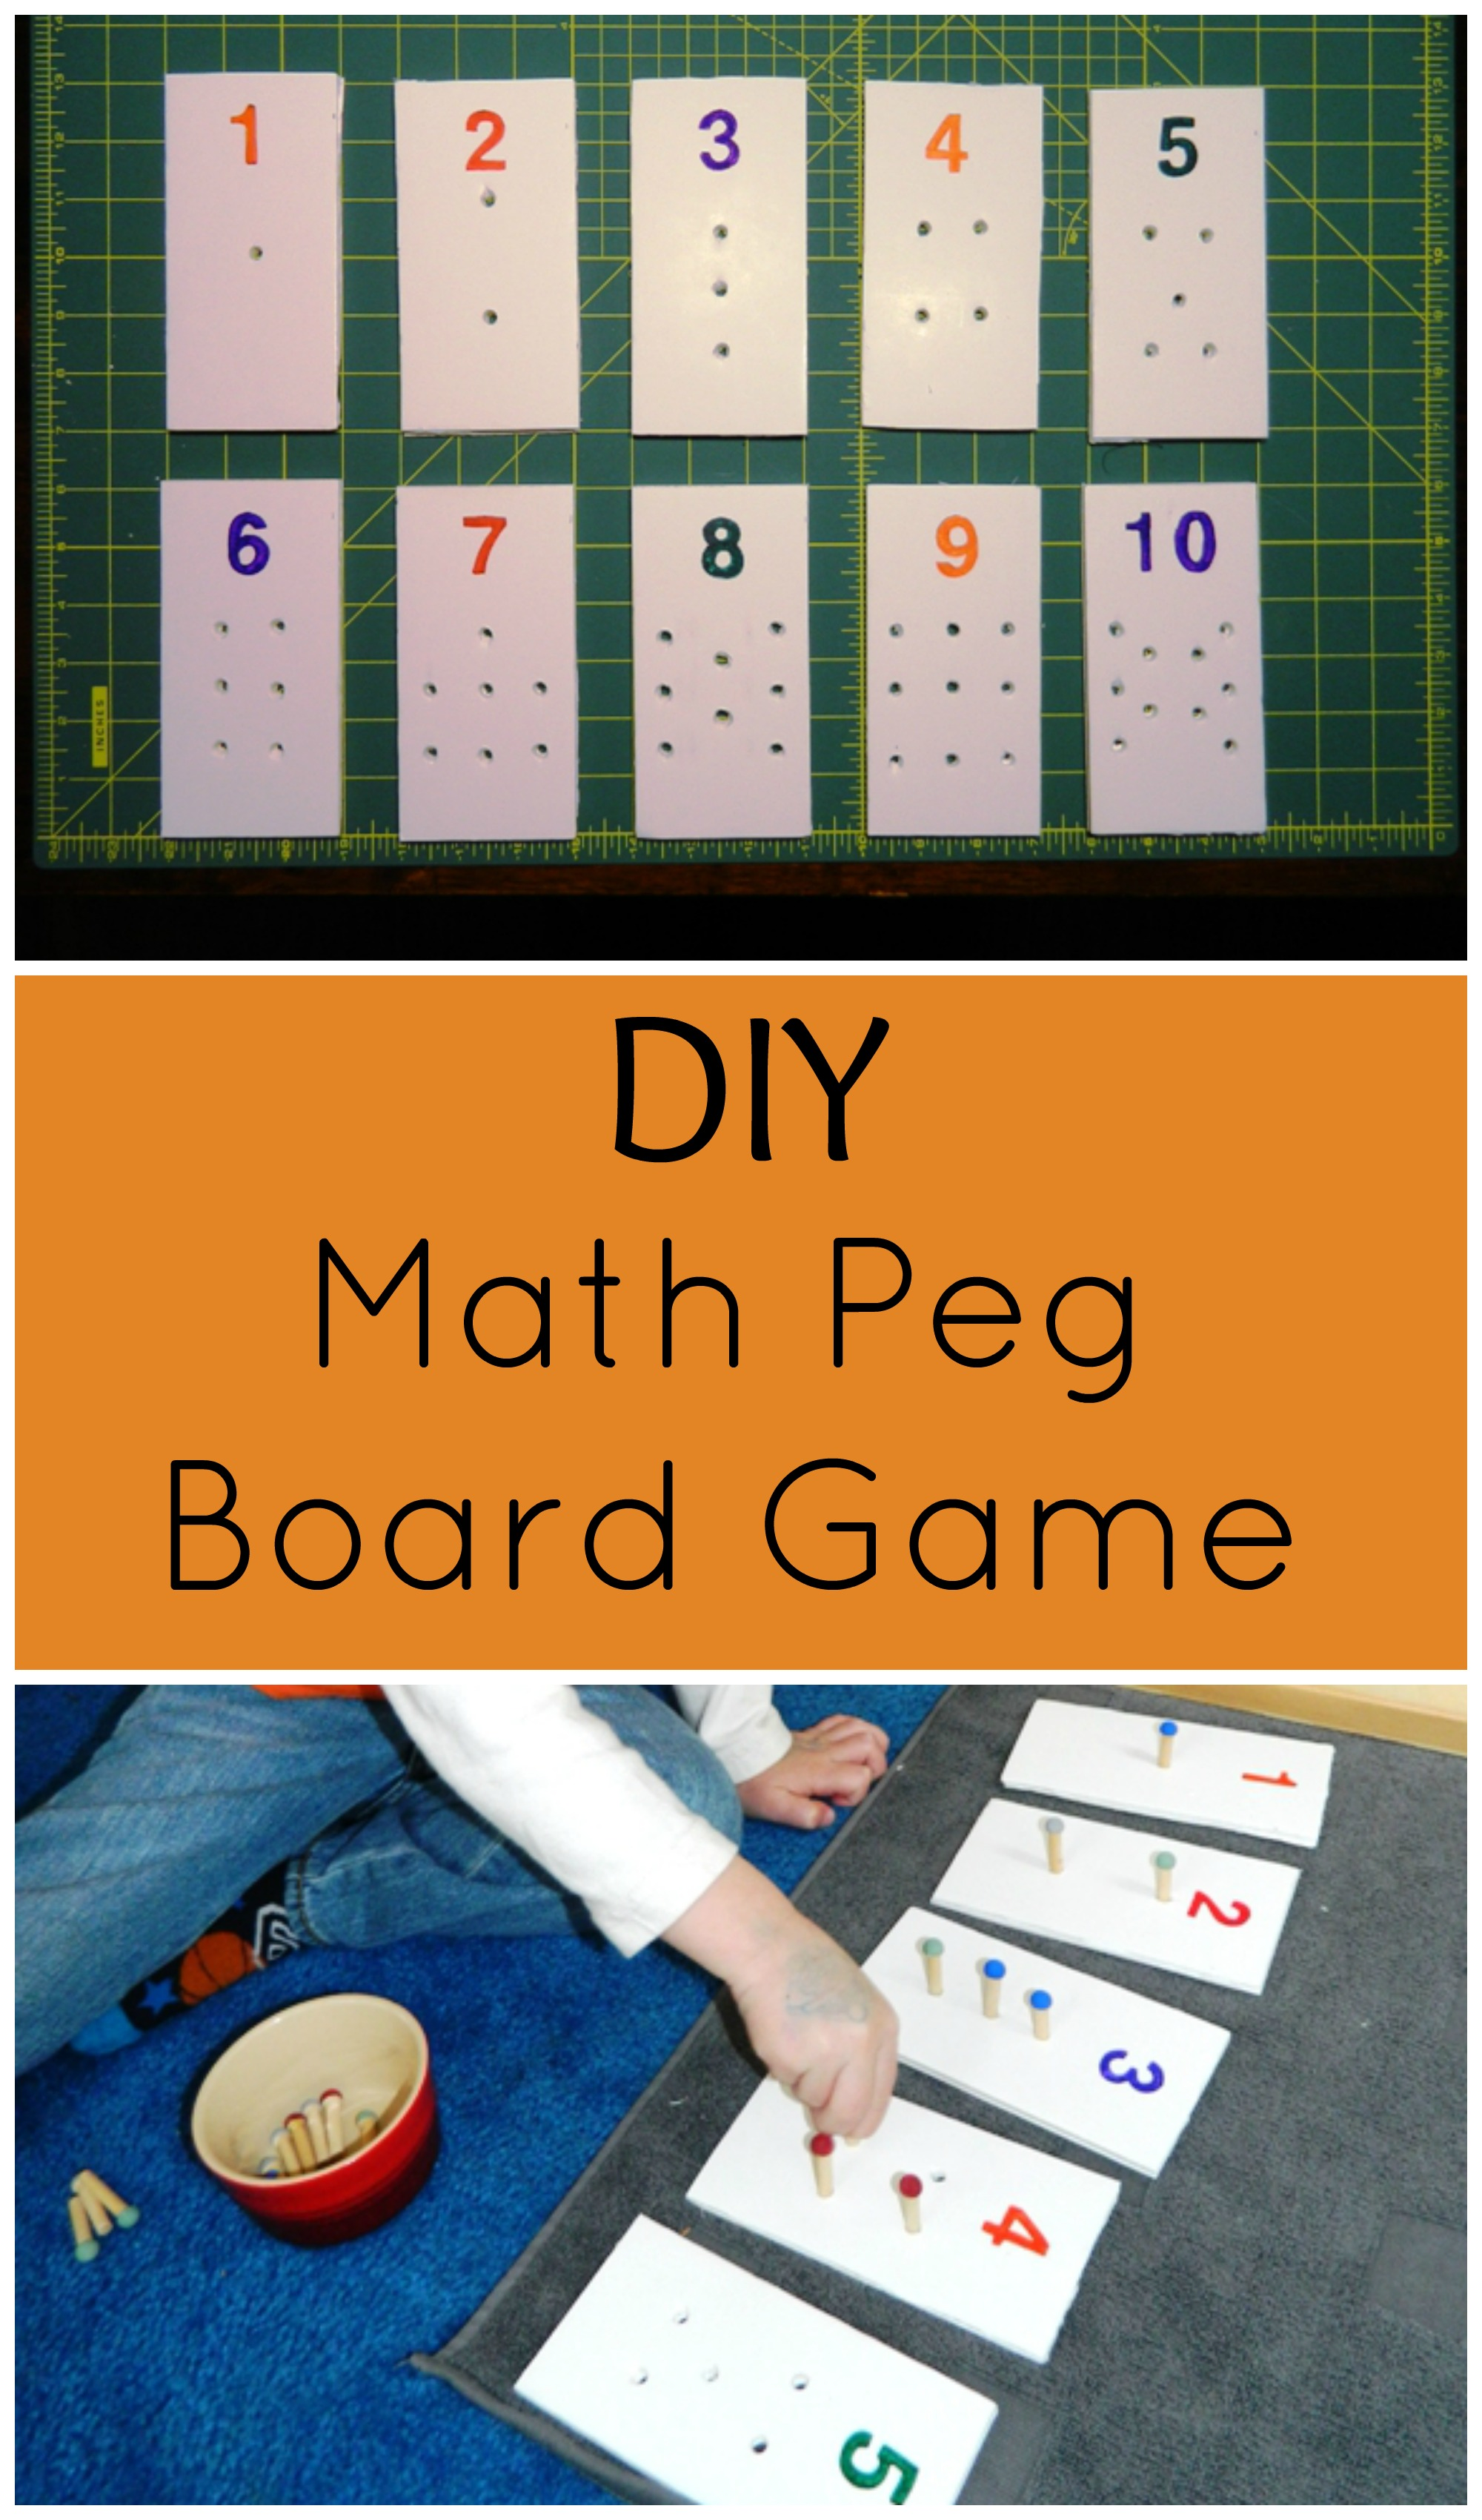 DIY Math Peg Board Game